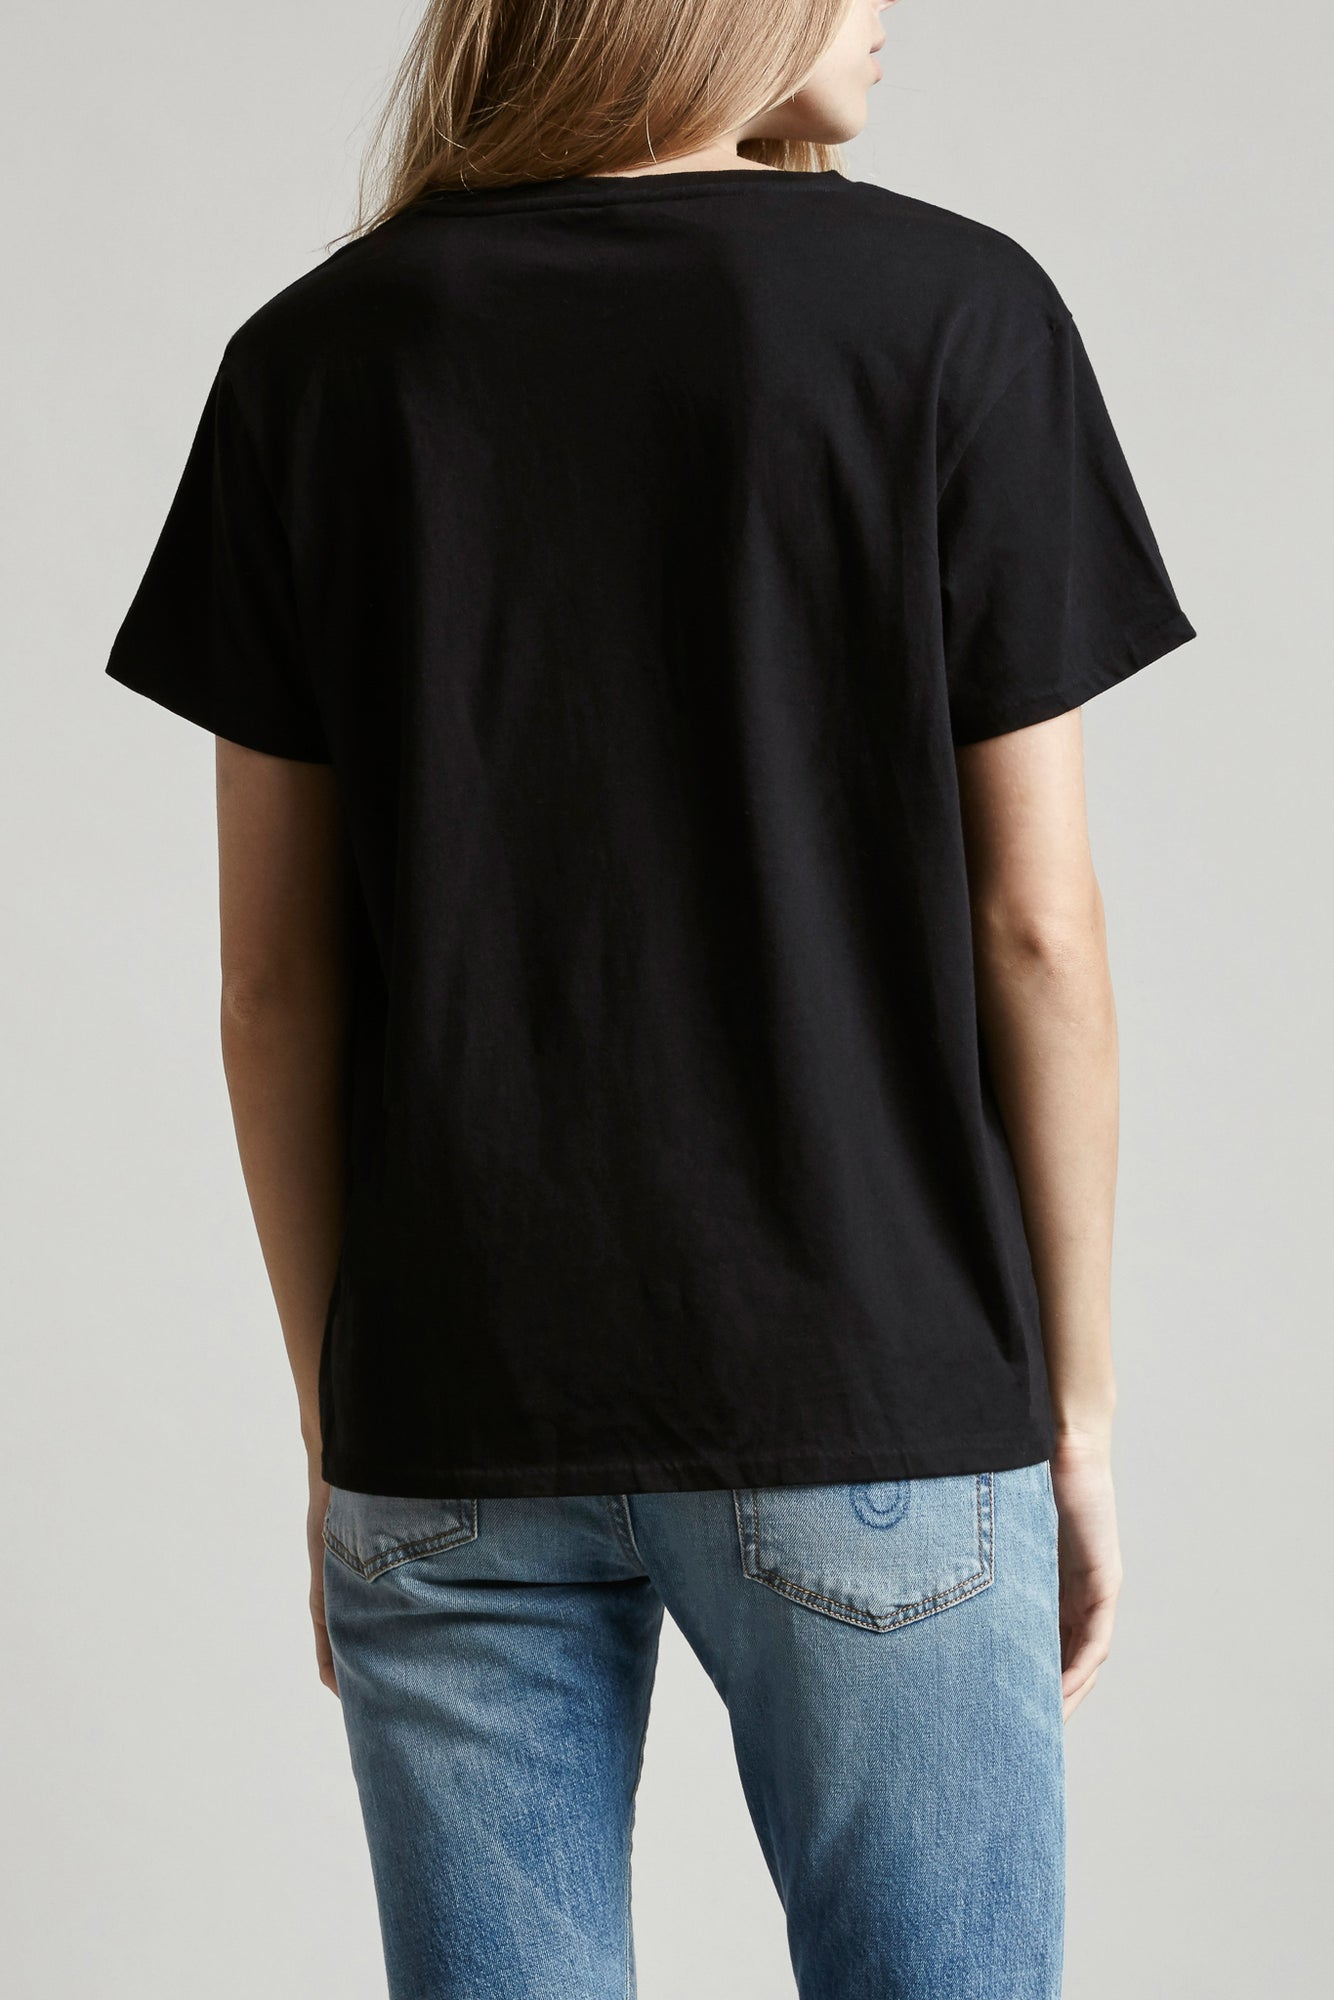 Battle Punk Boy T - Aged Black